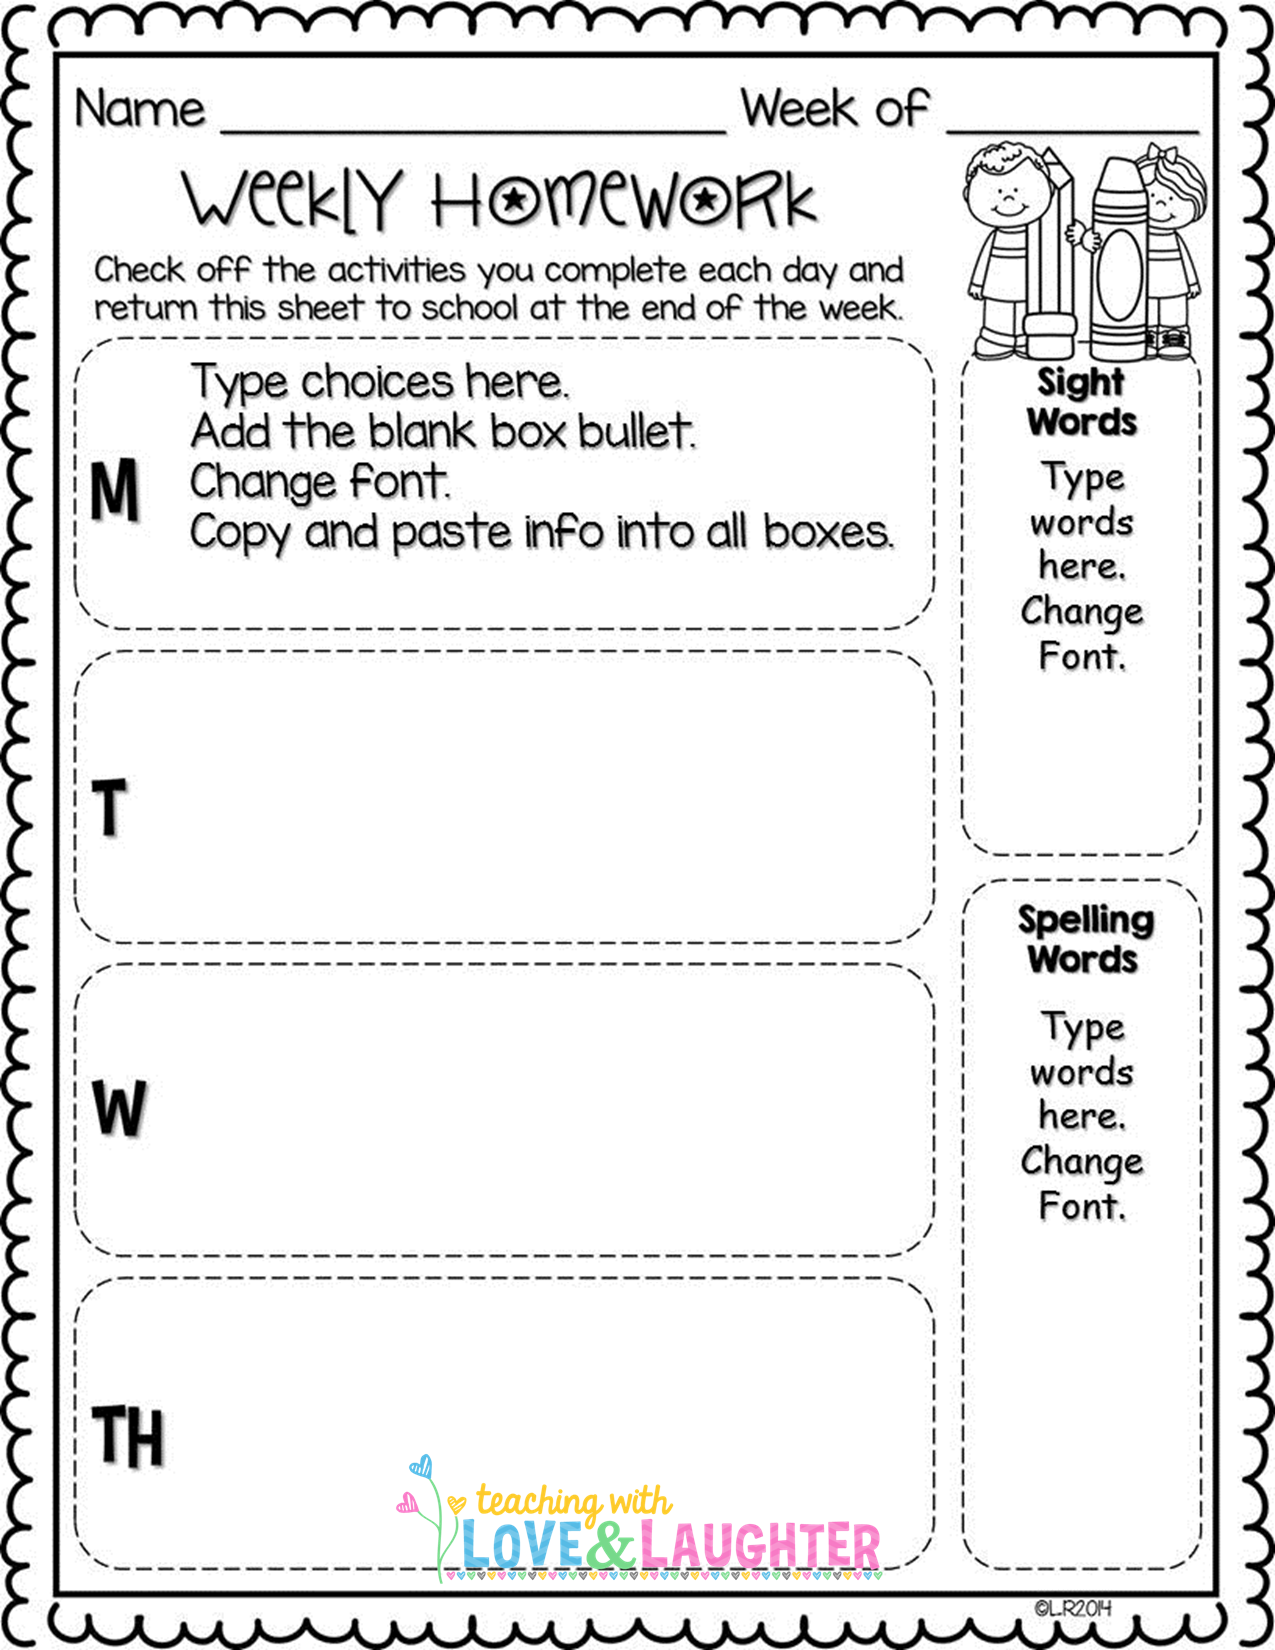 Worksheet First Grade School Work editable weekly homework checklists compatible with first grade i created these to use as you can tell the children what work on each day or they pick and choos